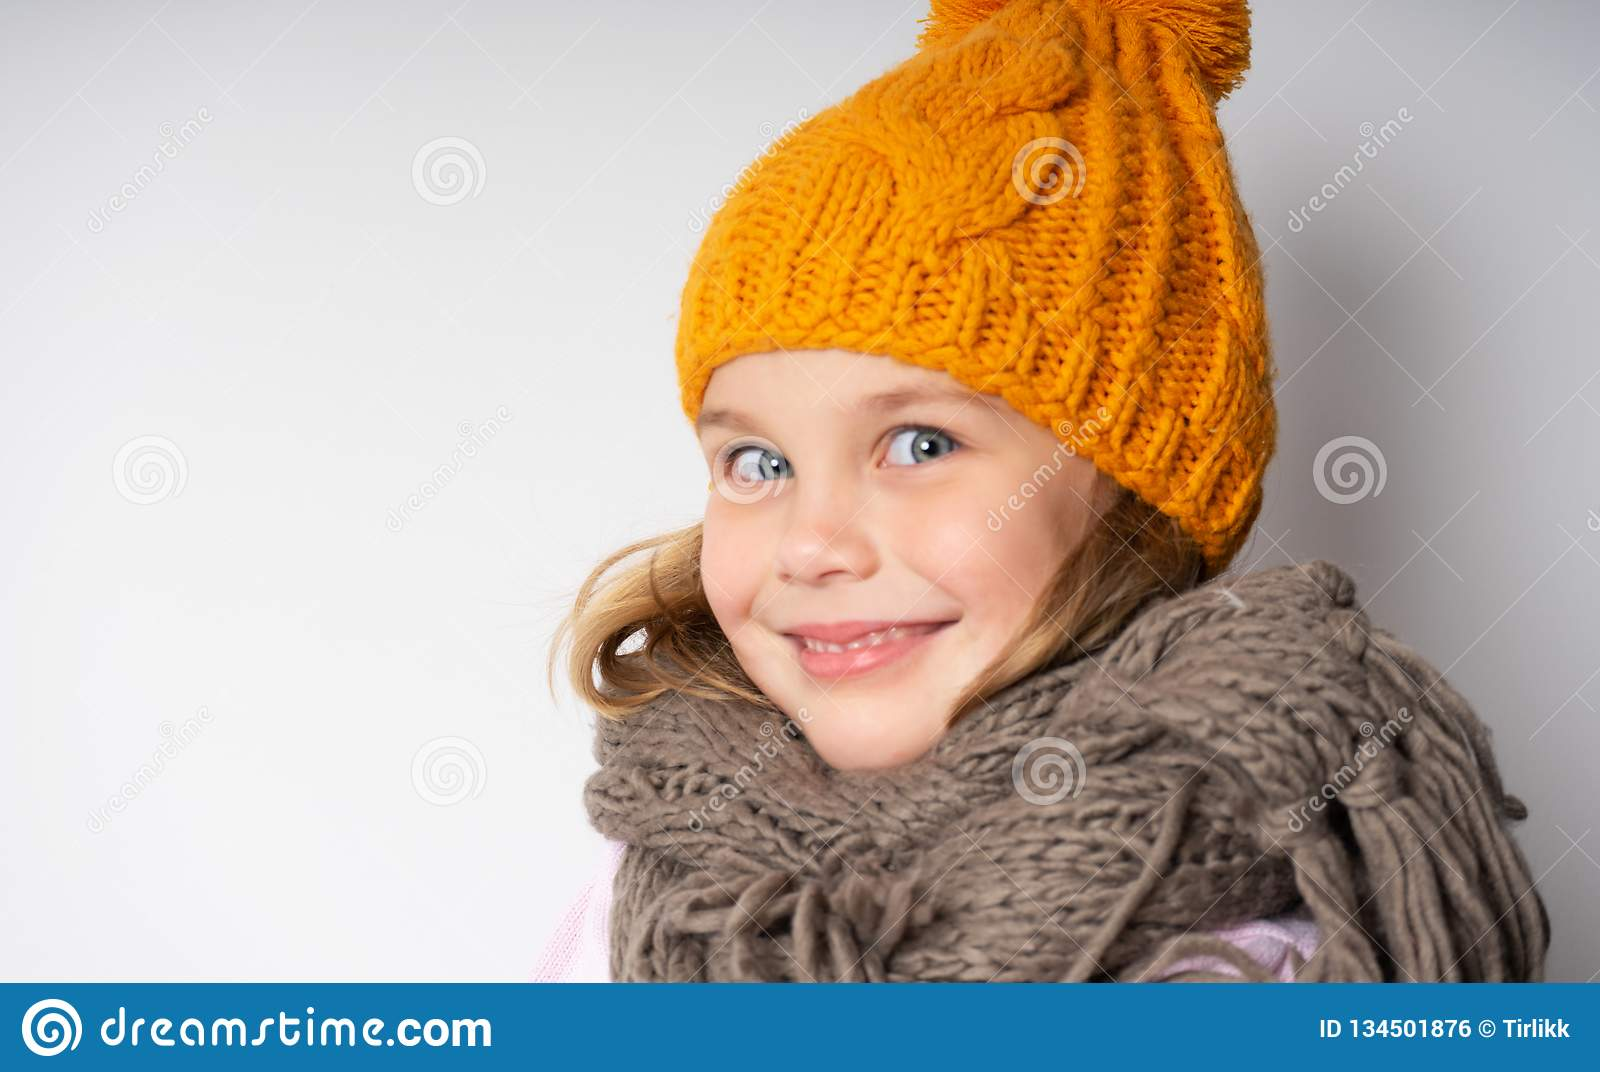 611f014dfa6 Close up face portrait of toothy smiling young woman wearing knitted hat  and scarf.